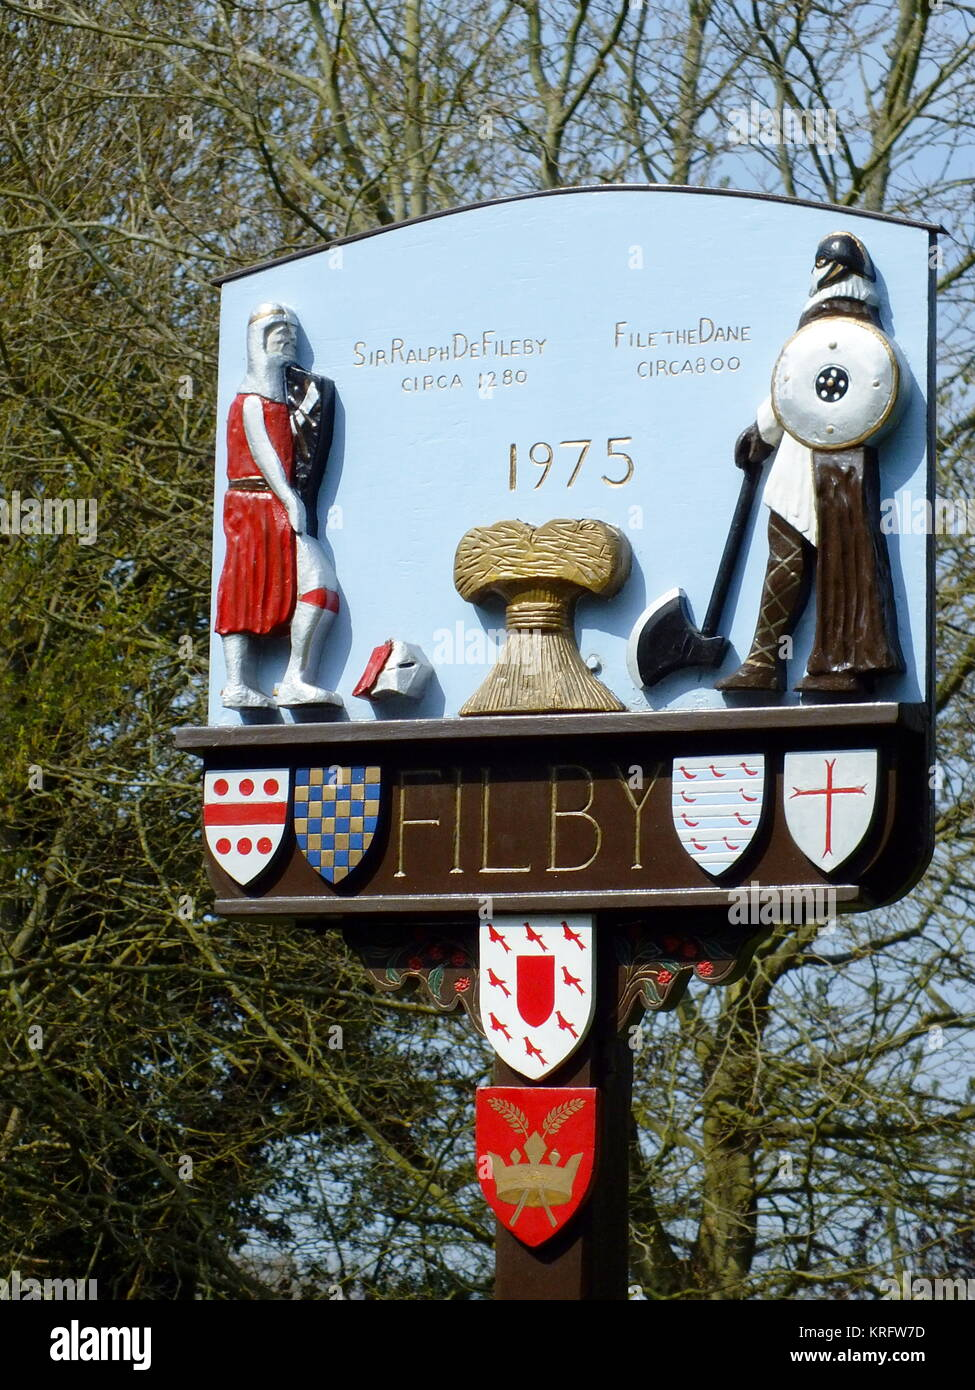 Village sign for Filby, near Great Yarmouth, Norfolk, dated 1975, depicting two historical figures -- File the Dane, - Stock Image